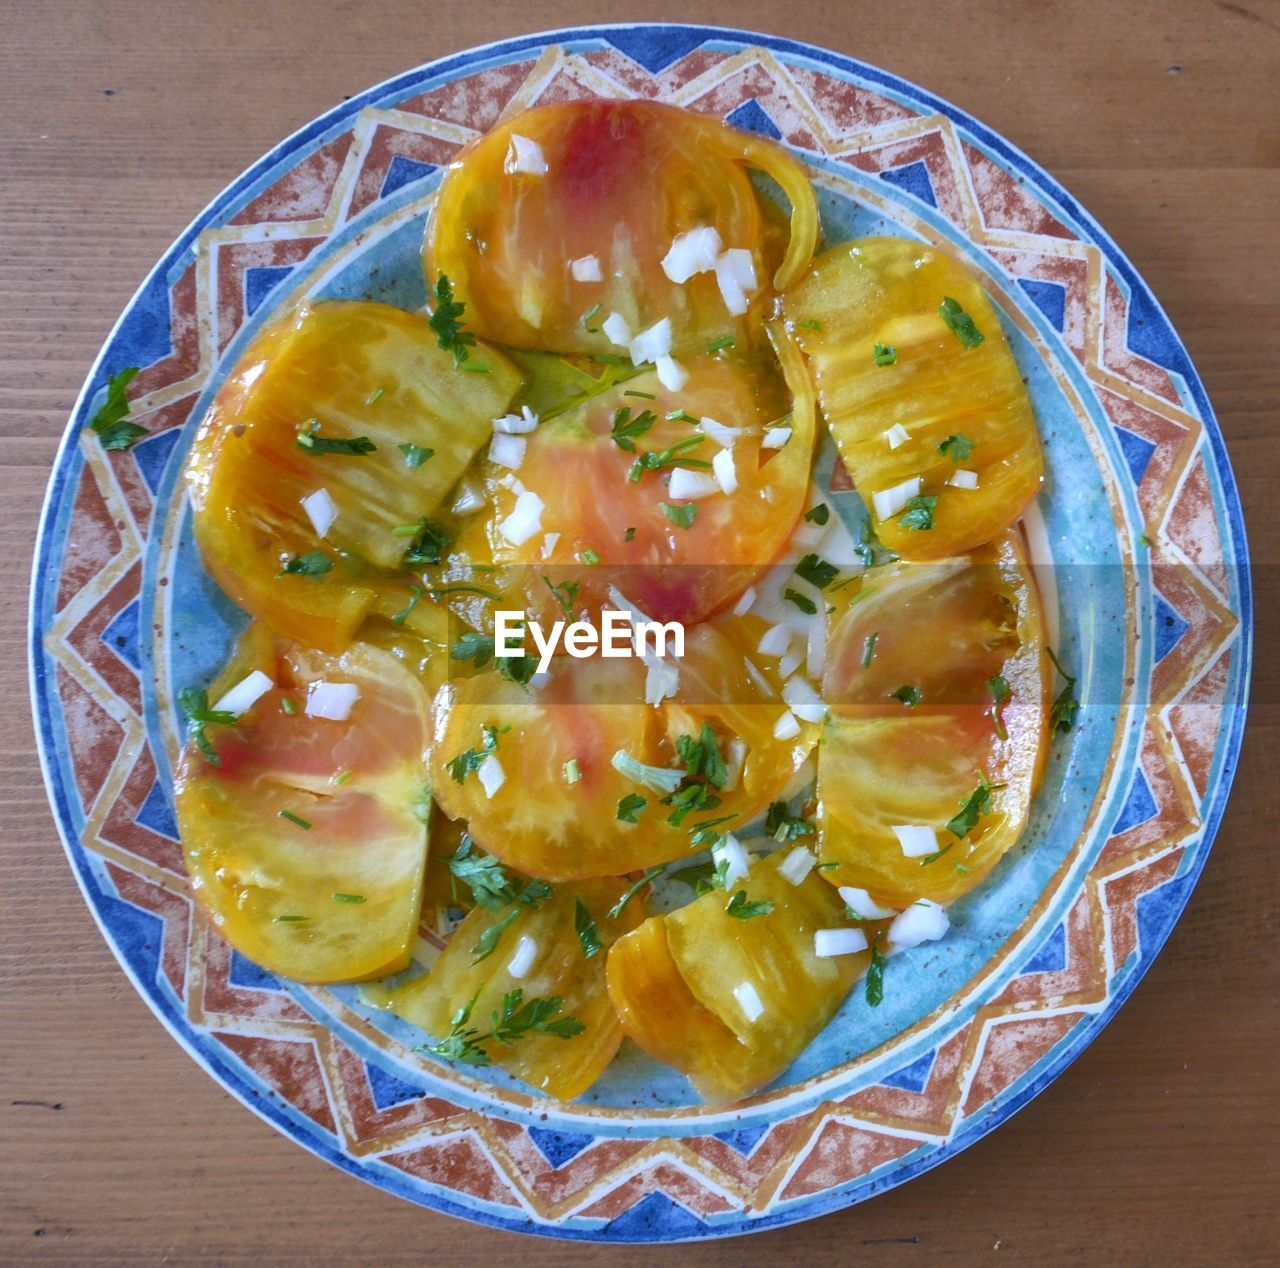 Tomato slices garnished with chopped onion served in plate